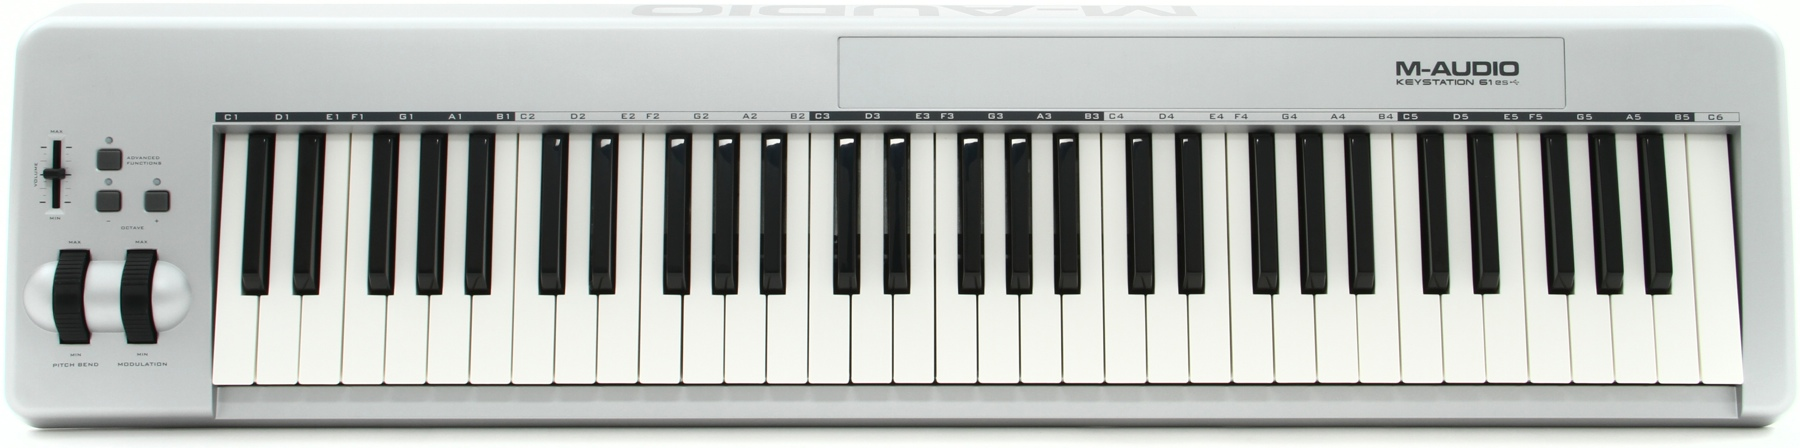 m audio keystation 61es keyboard with subscription playground sessions. Black Bedroom Furniture Sets. Home Design Ideas